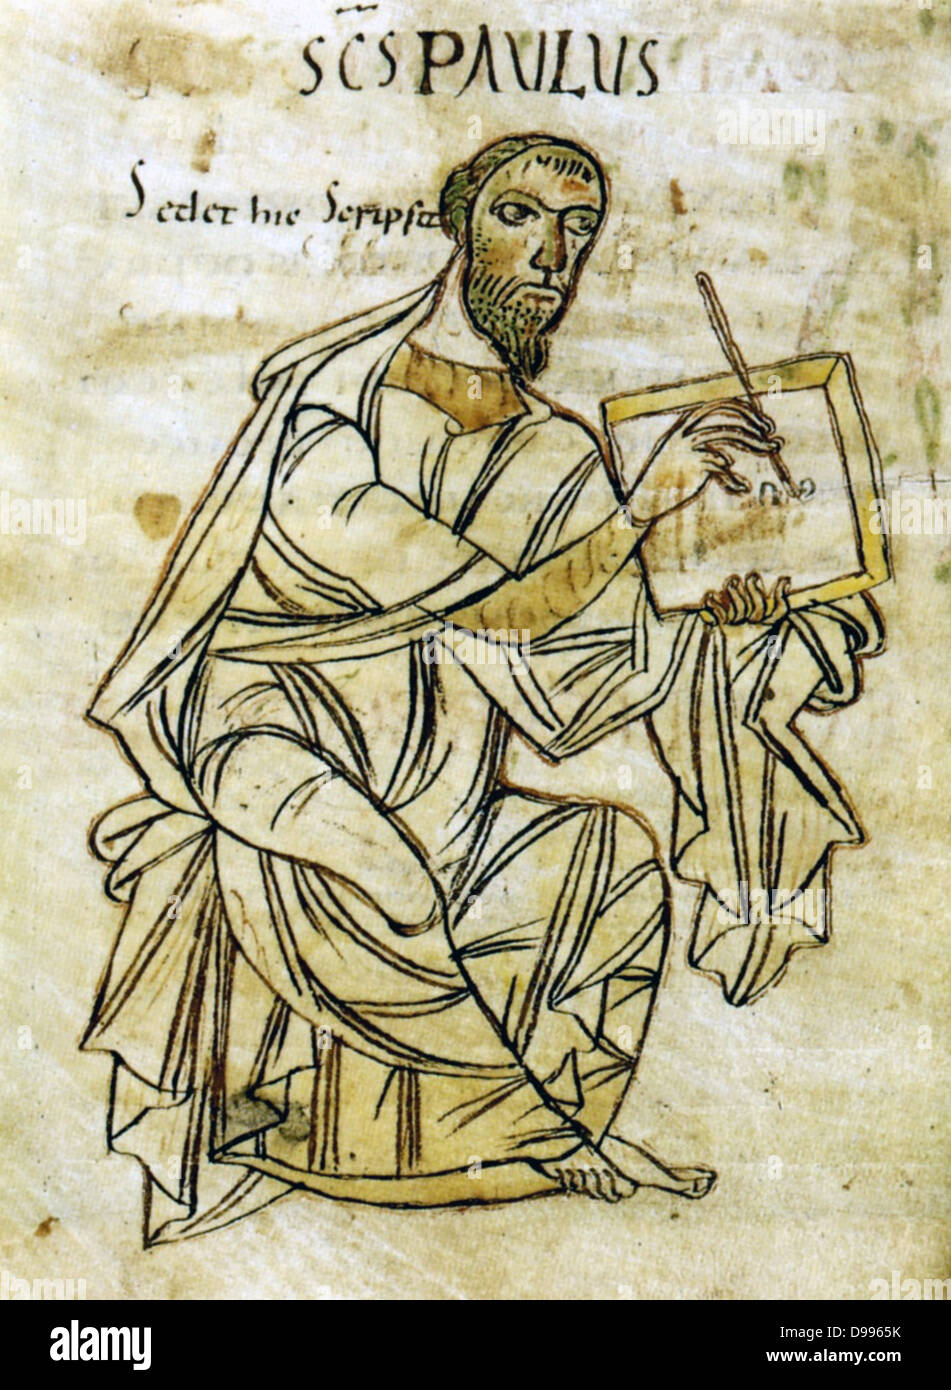 Saint Paul writing. From an early 9th century manuscript version of Saint Paul's letters. The manuscript is - Stock Image